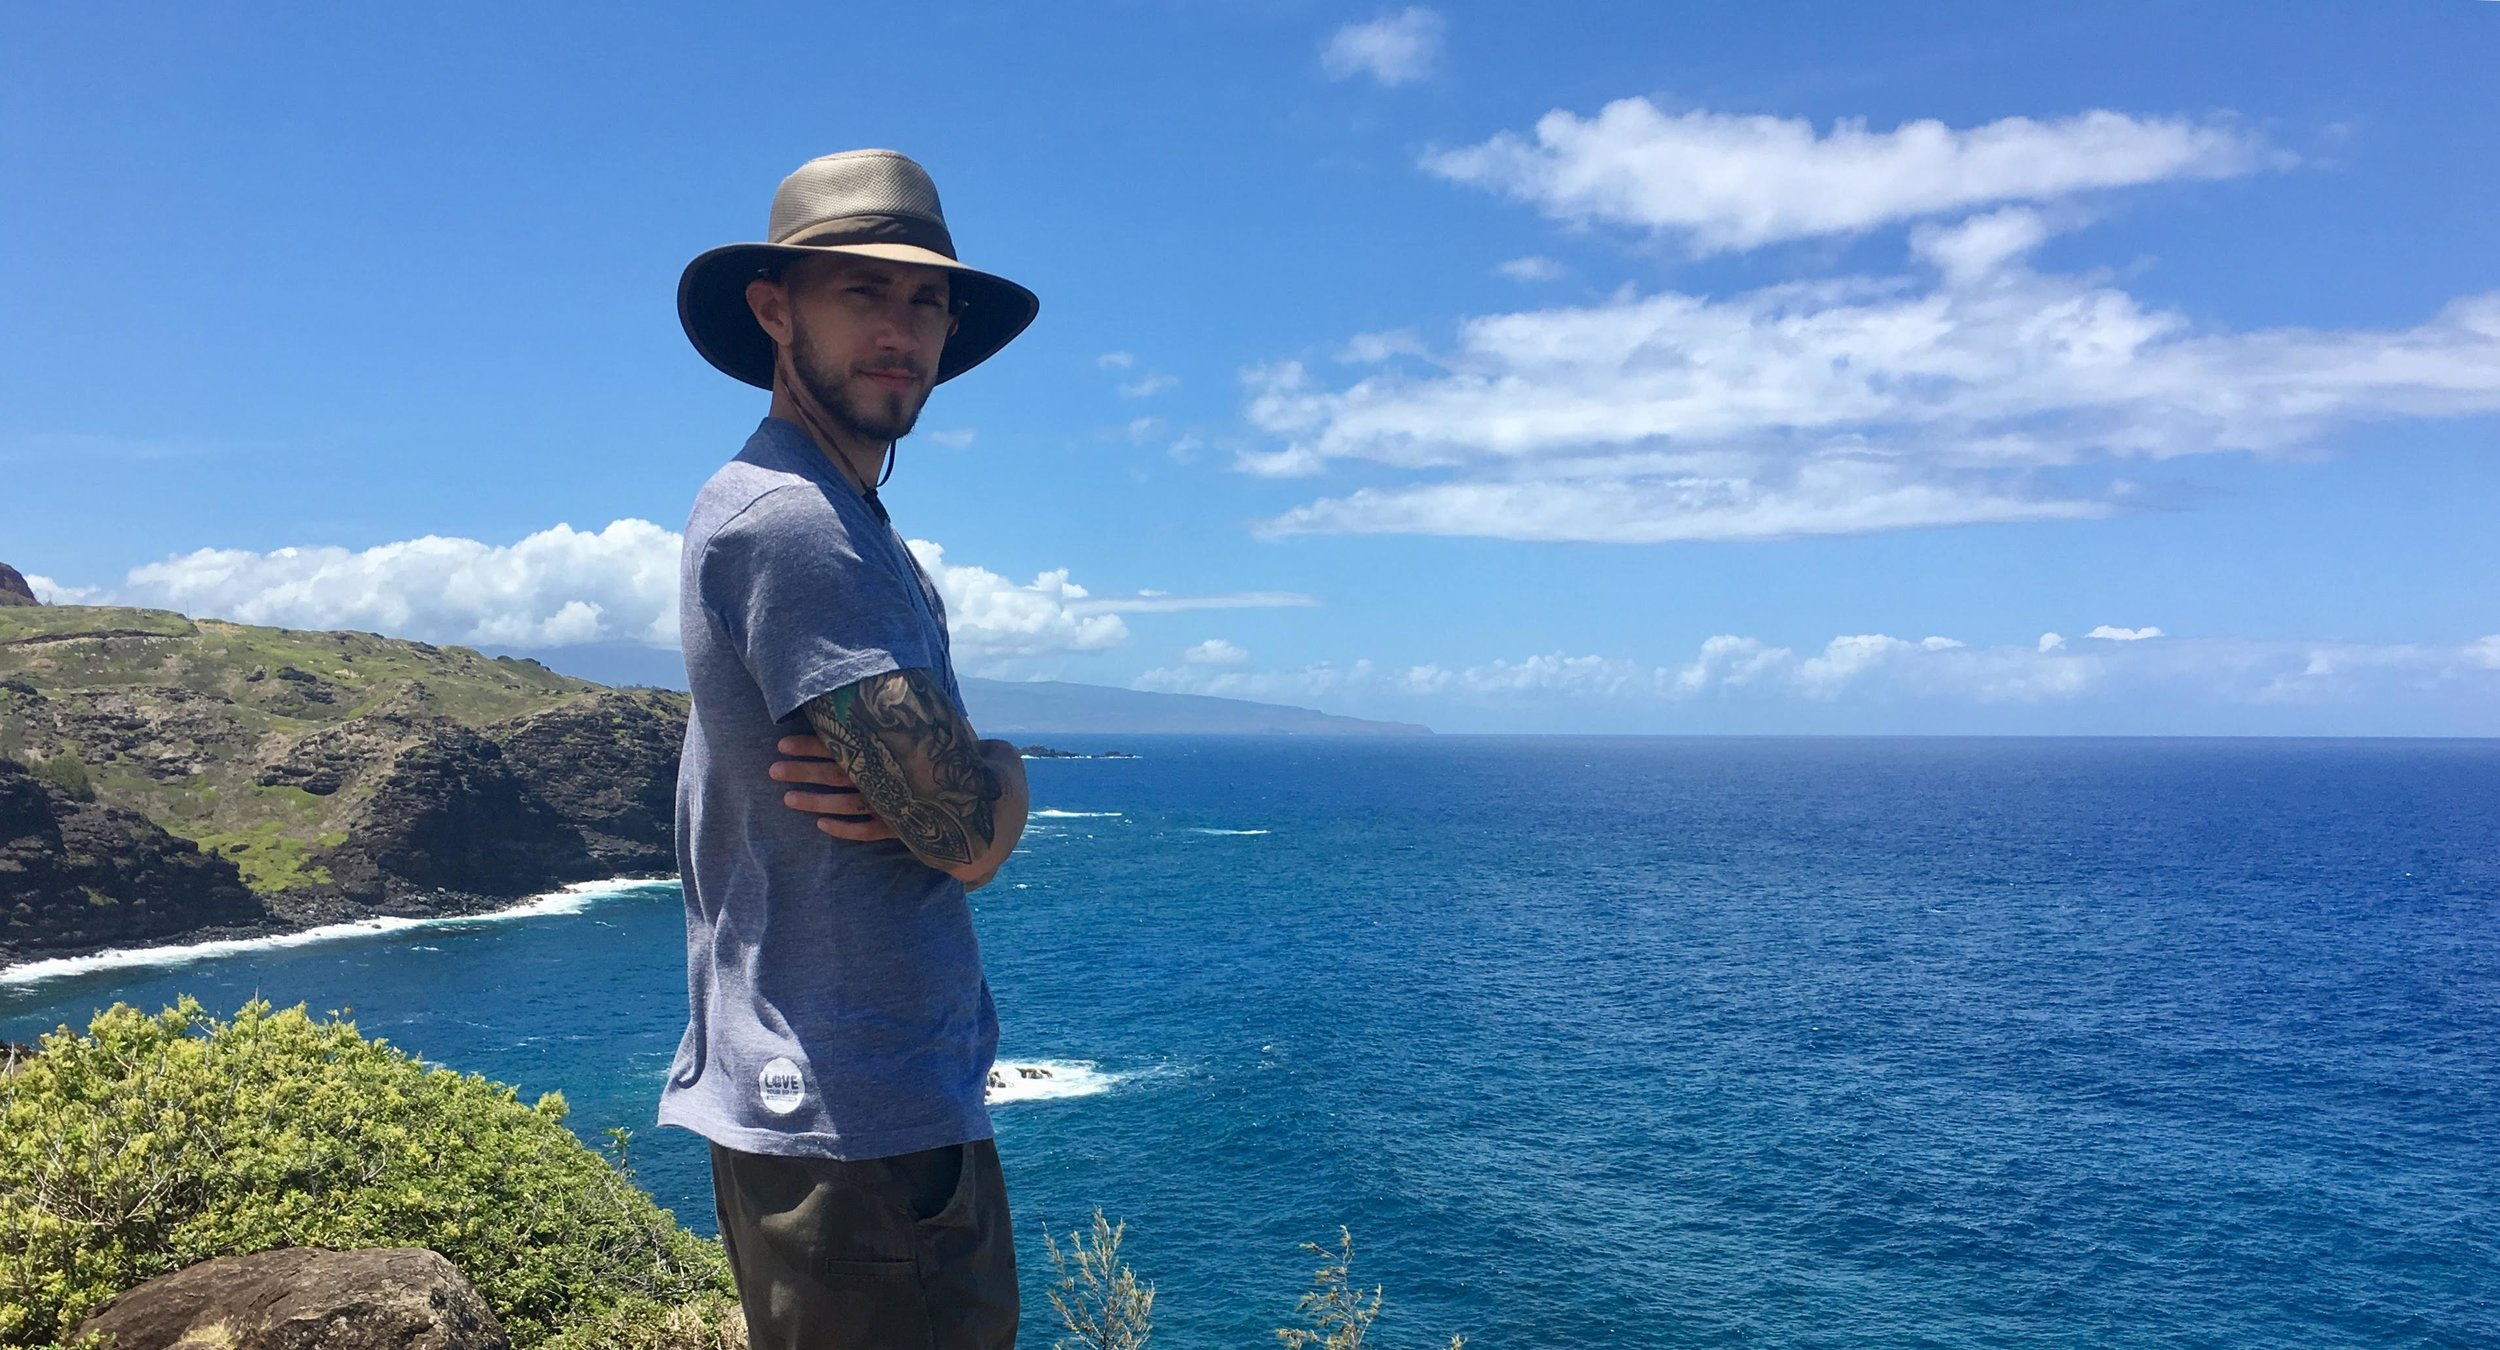 Meditating on a cliff in Hawaii, post accident.